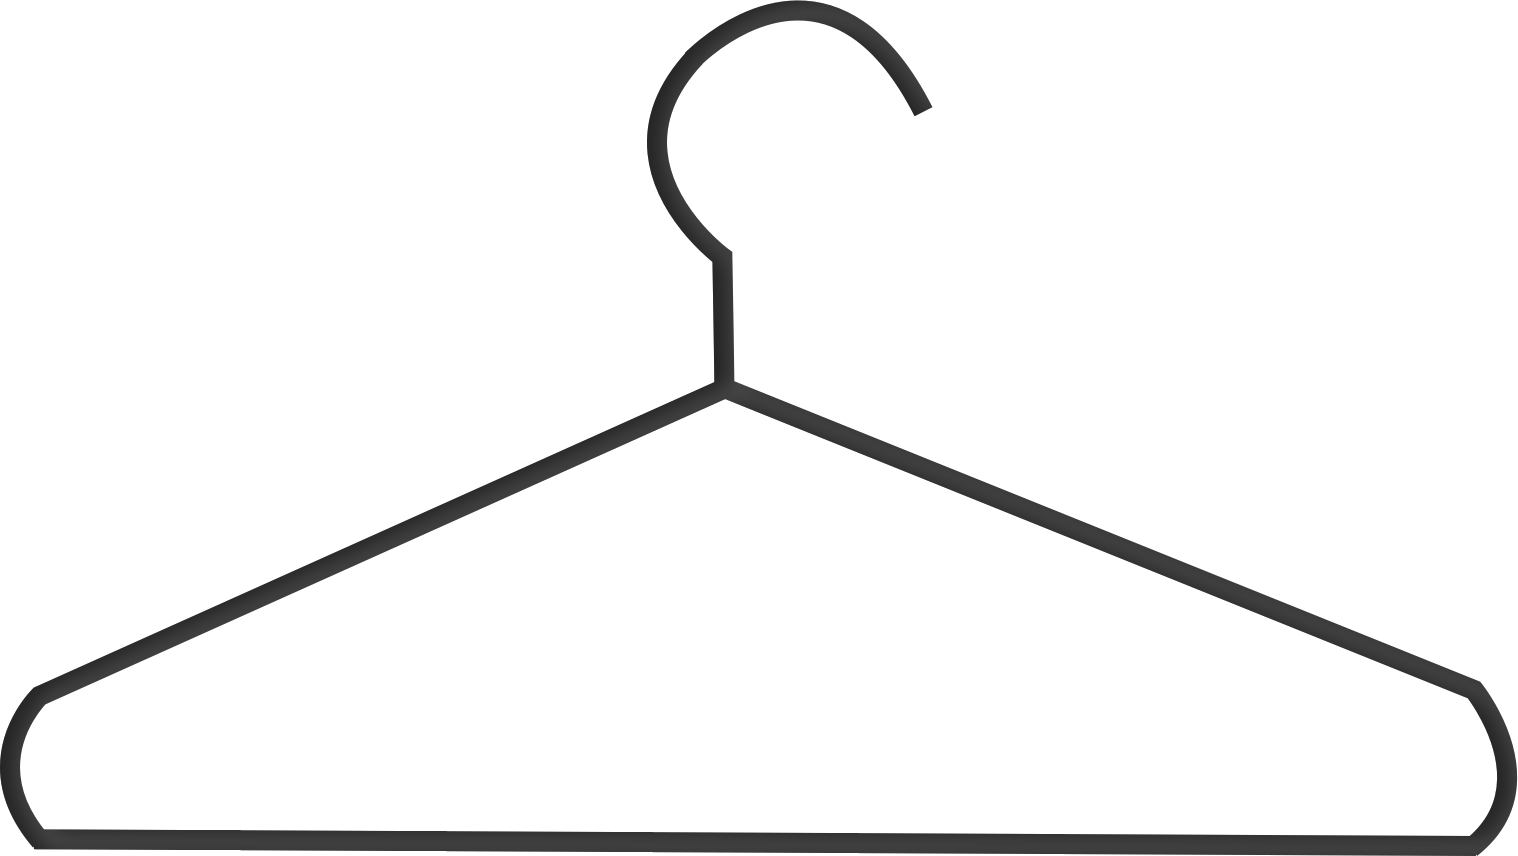 Hanger png clipart images gallery for free download.